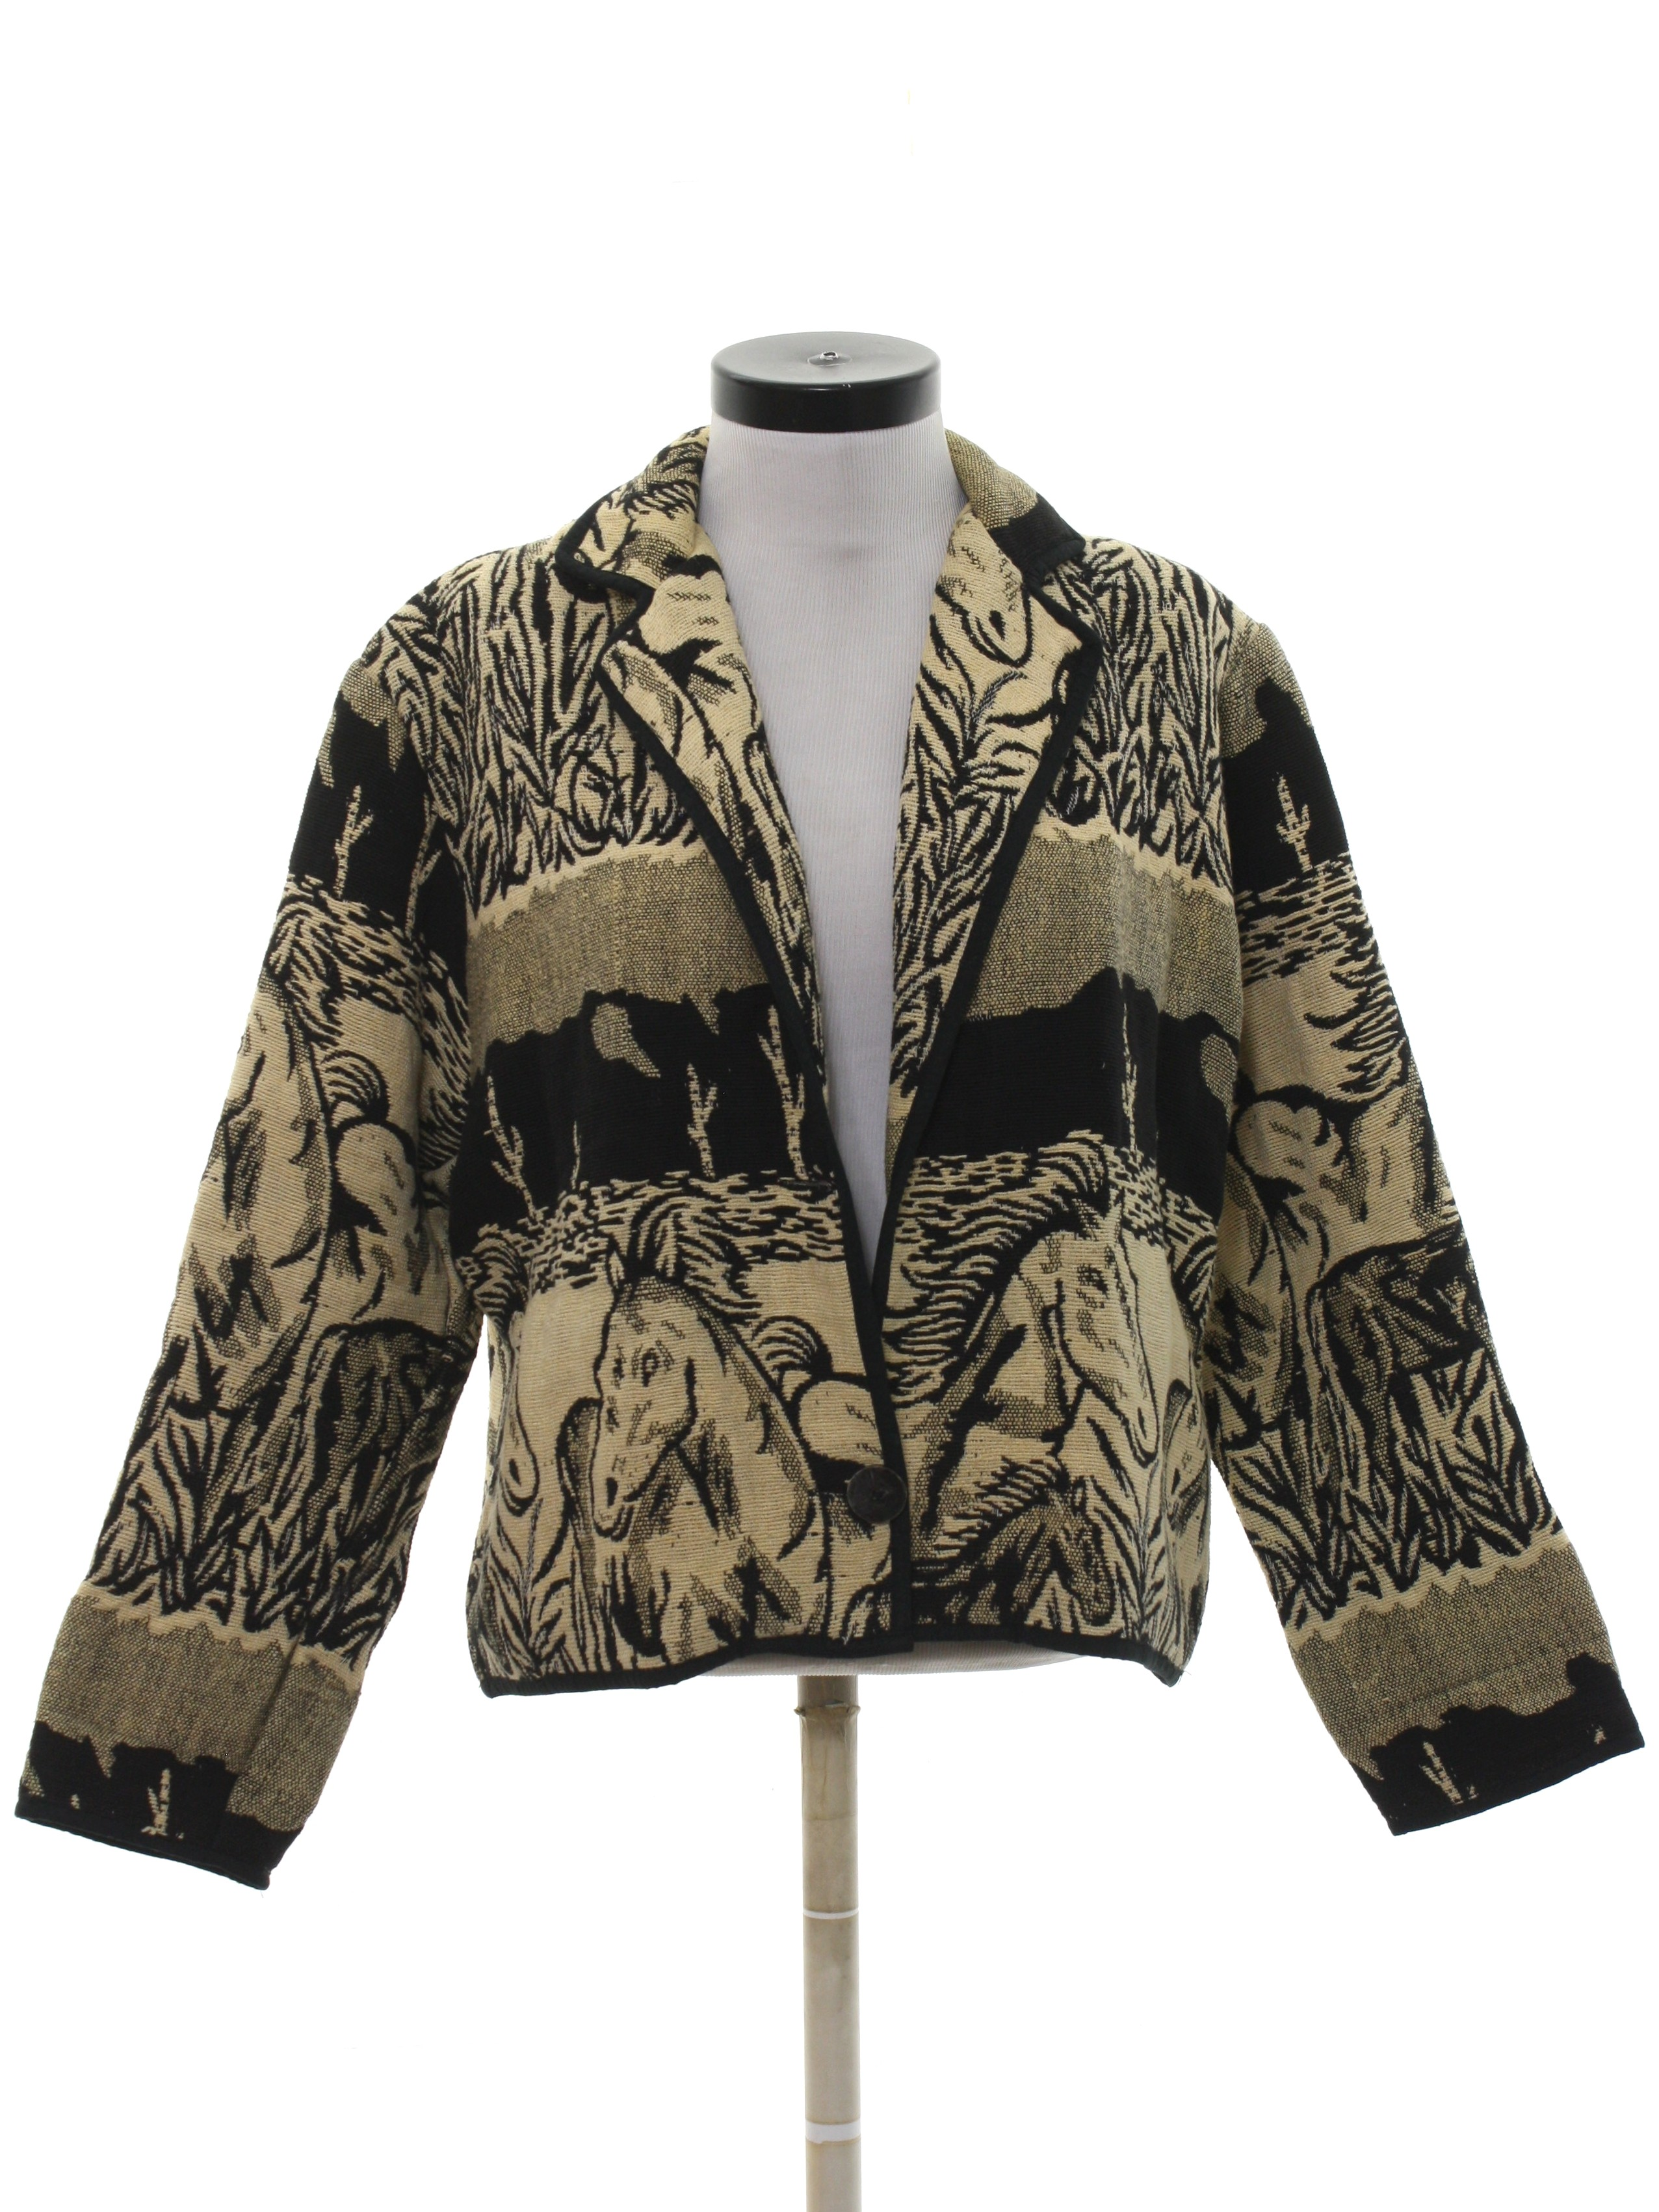 8d34c8bdbcc Vintage New Identity 1980s Jacket  80s -New Identity- Womens black and  cream thick cotton tapestry cloth longsleeve 1 button front closure  equestrian style ...